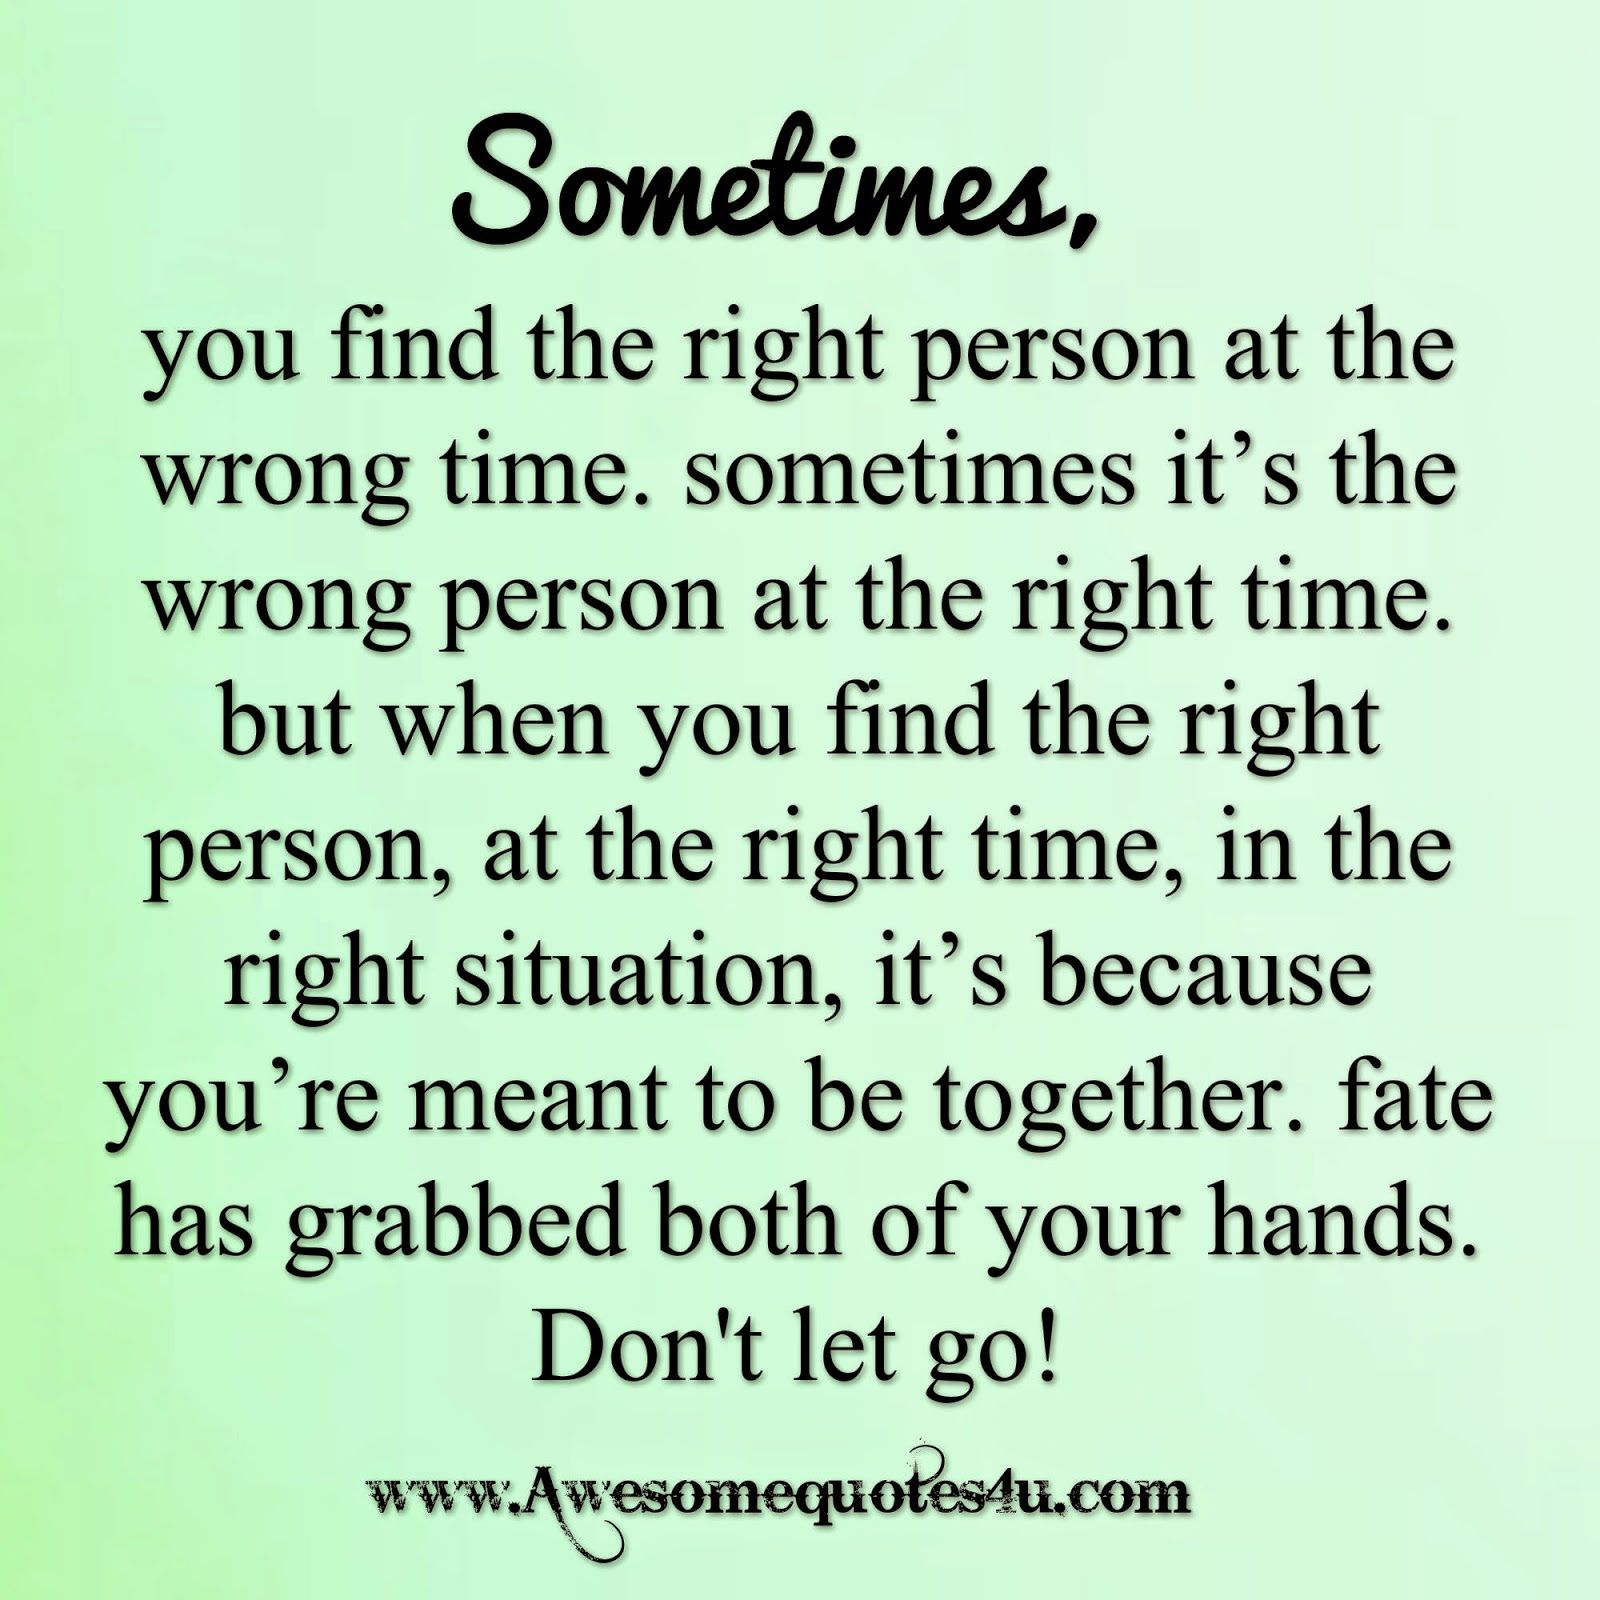 Awesome Quotes Sometimes you find the wrong person at the right time